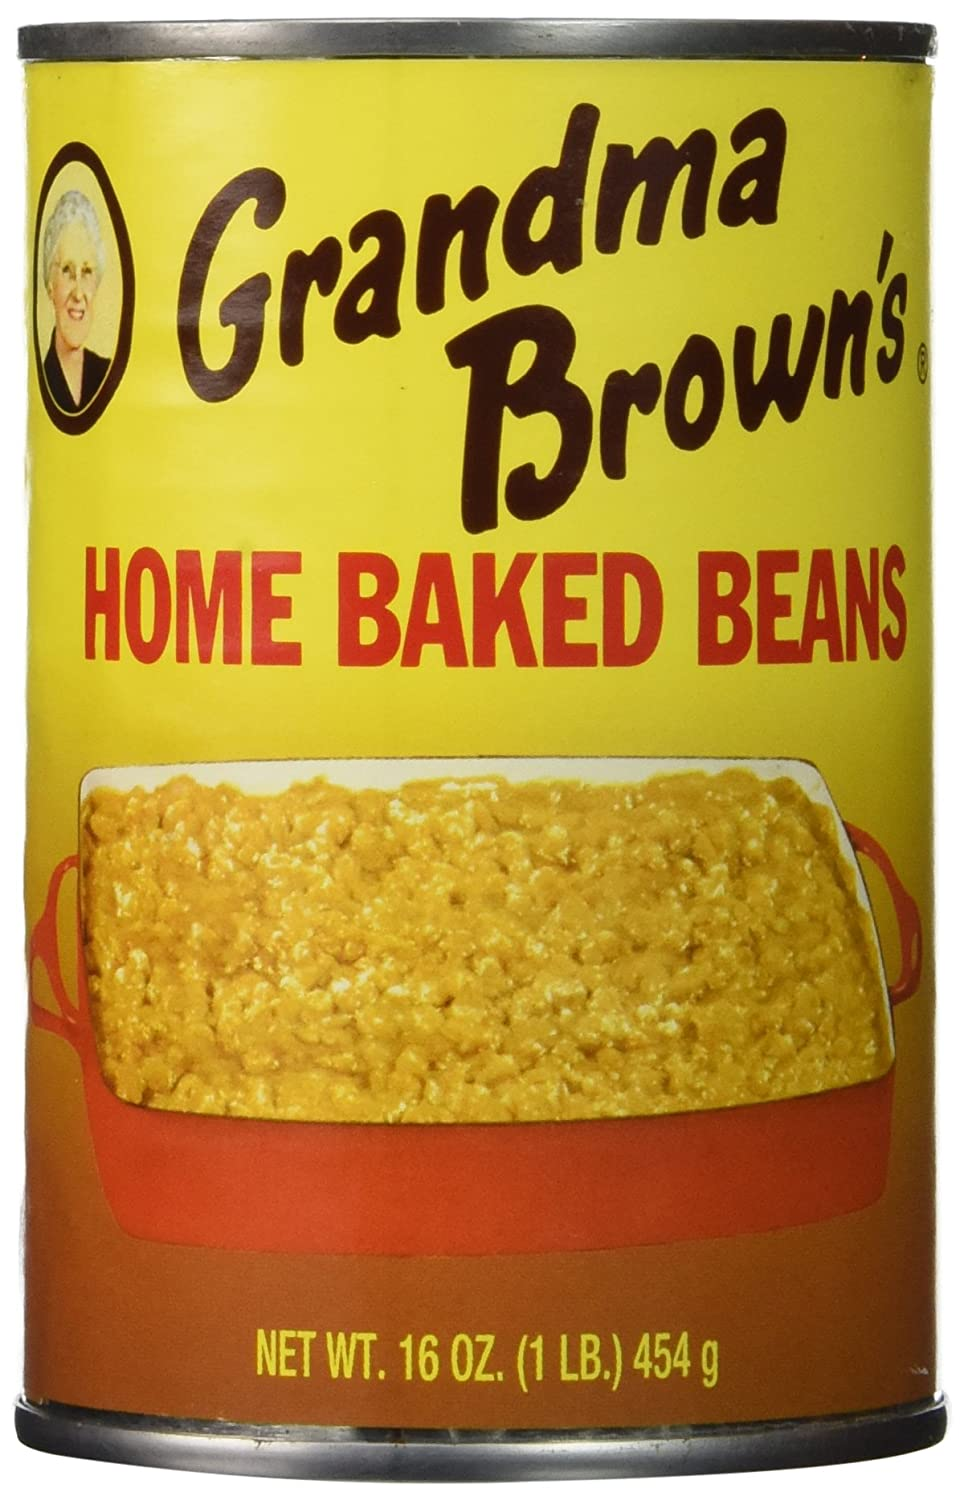 Grandma Brown's Home Baked Beans (Pack of 3) 16 oz Cans